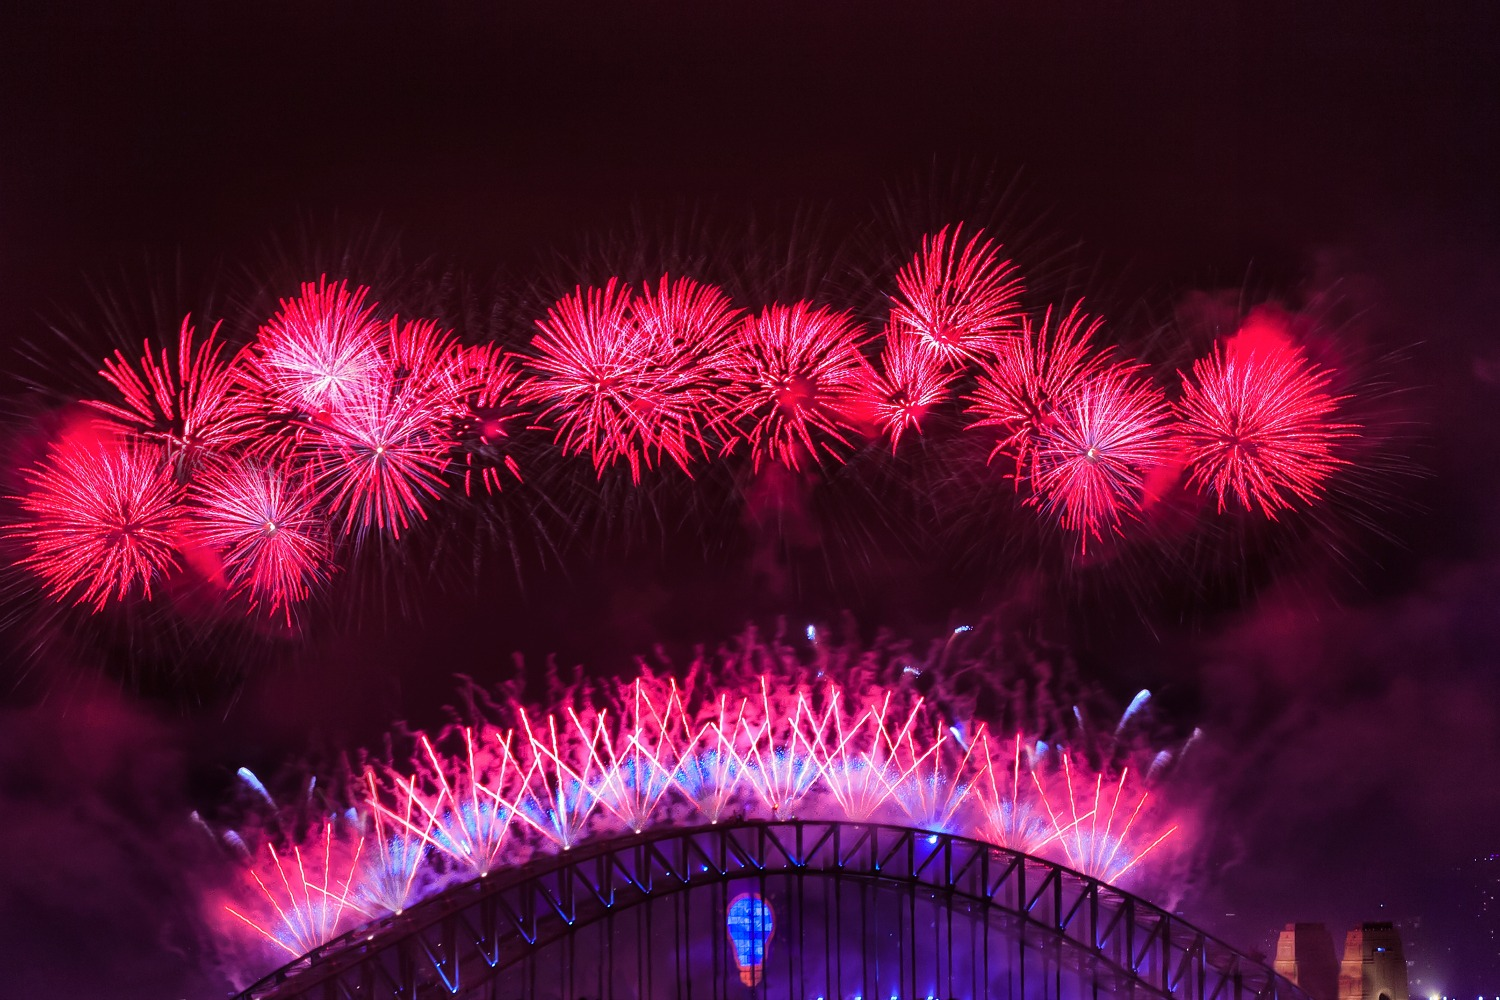 Australia Sydney Harbour bridge arch highlighted by New Year Fireworks bright red light balls and pyrotechnics